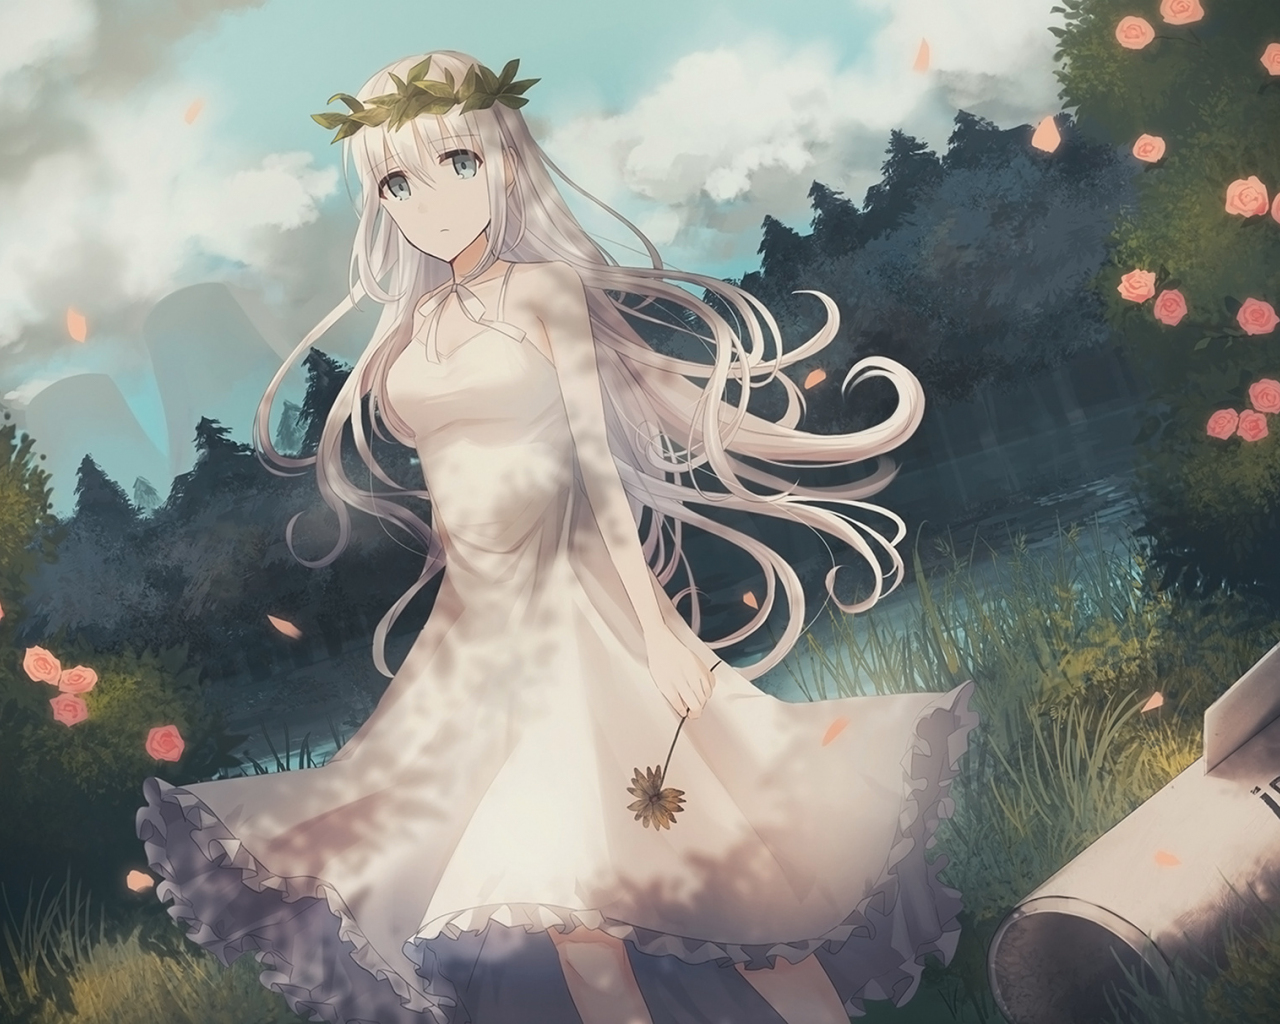 Download 1280x1024 wallpaper white hairs anime girl flower crown 1280x1024 wallpaper white hairs anime girl flower crown outdoor izmirmasajfo